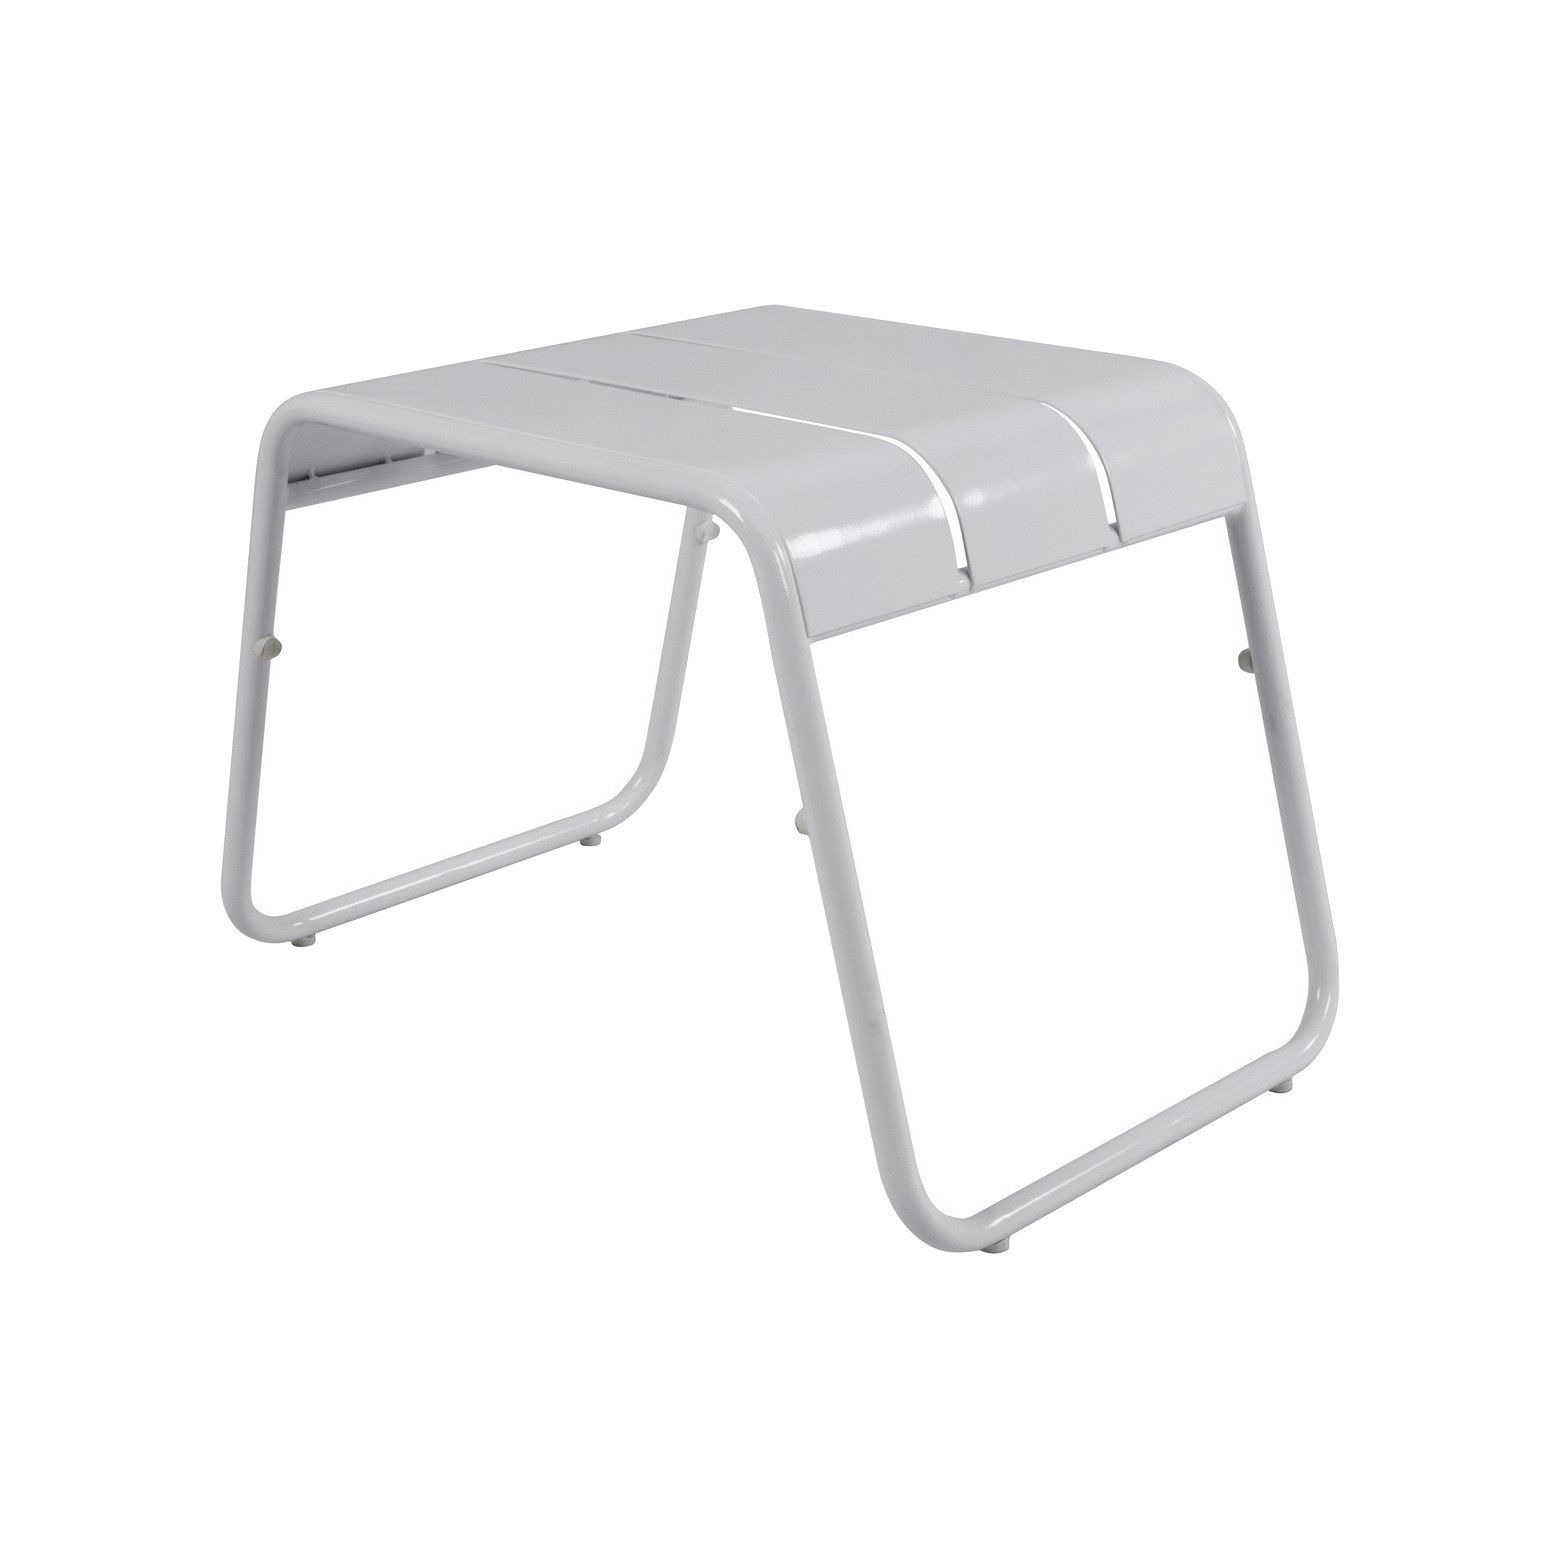 the room essentials metal accent patio table white your outdoor space for sets backyard gazebo mosaic tile side designer lamp tables modern round wood coffee cherry dining bar top